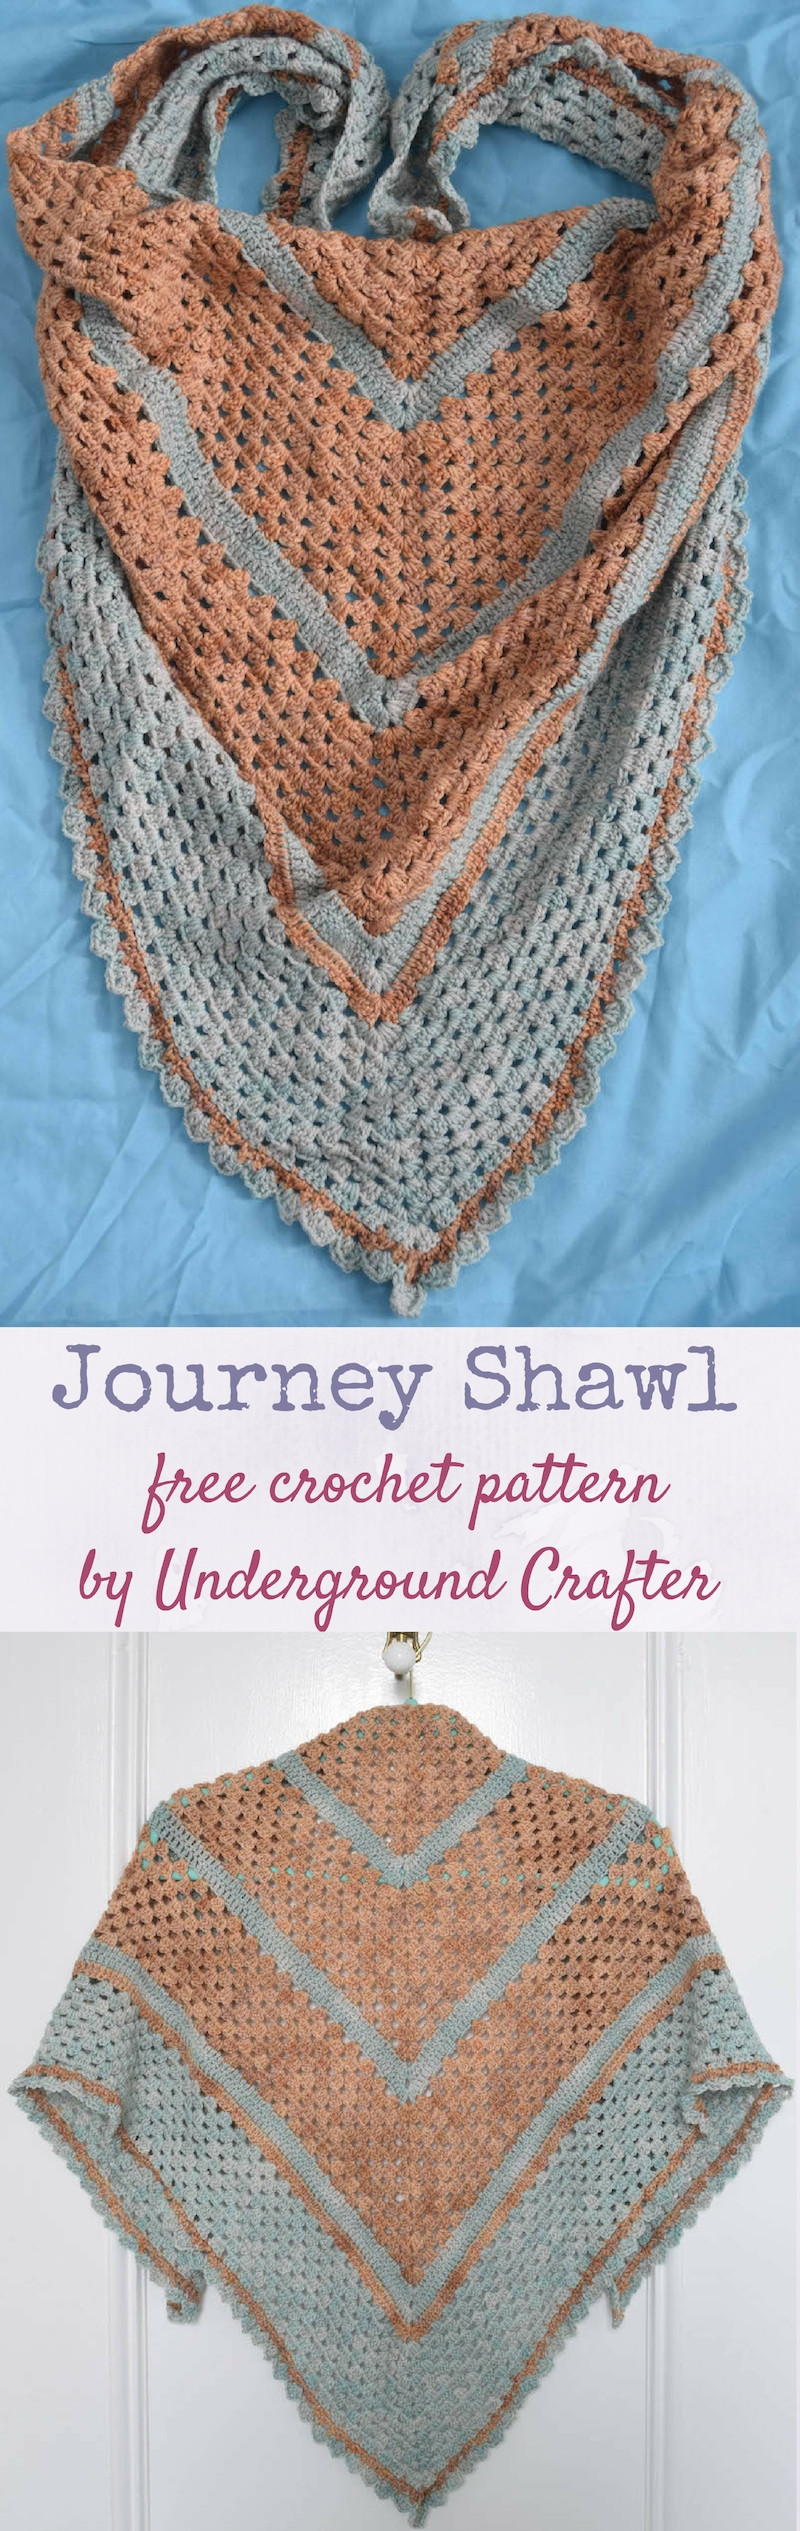 Crochet Shawl Pattern Fresh Crochet Pattern Journey Shawl Of Wonderful 50 Pics Crochet Shawl Pattern